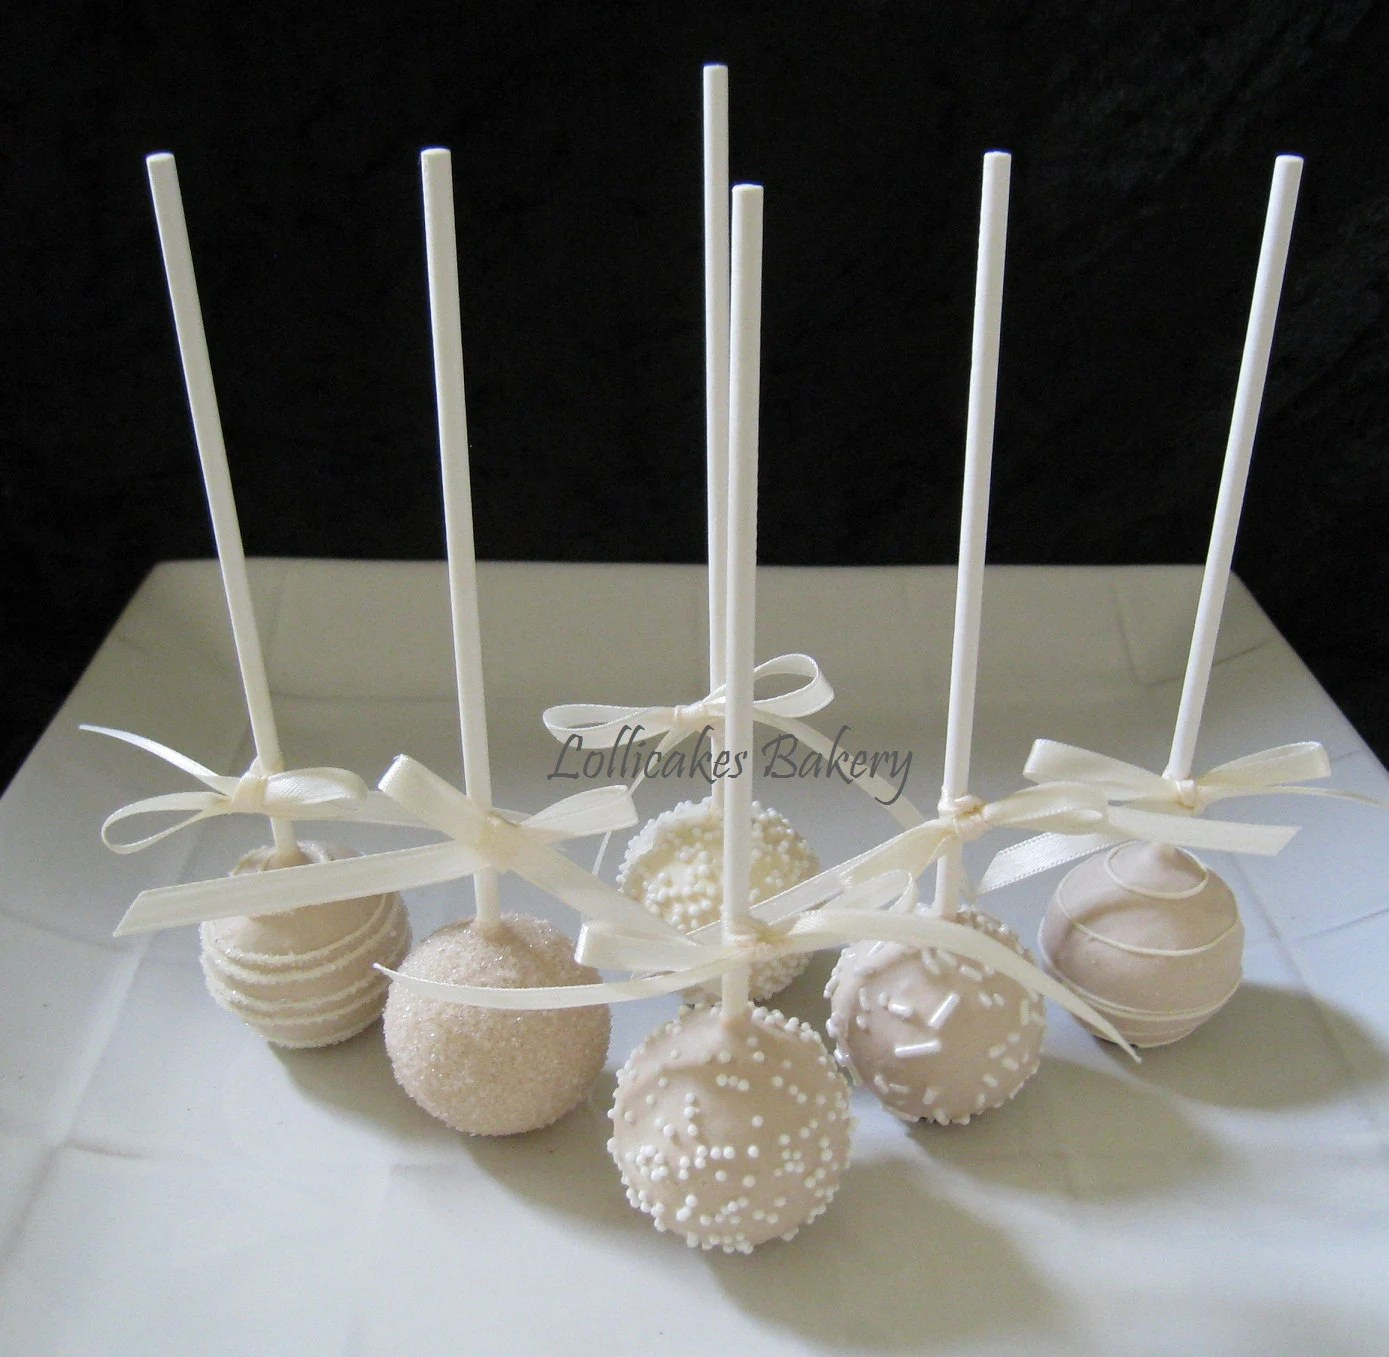 Wedding Favors Wedding Cake Pops Made to Order with High